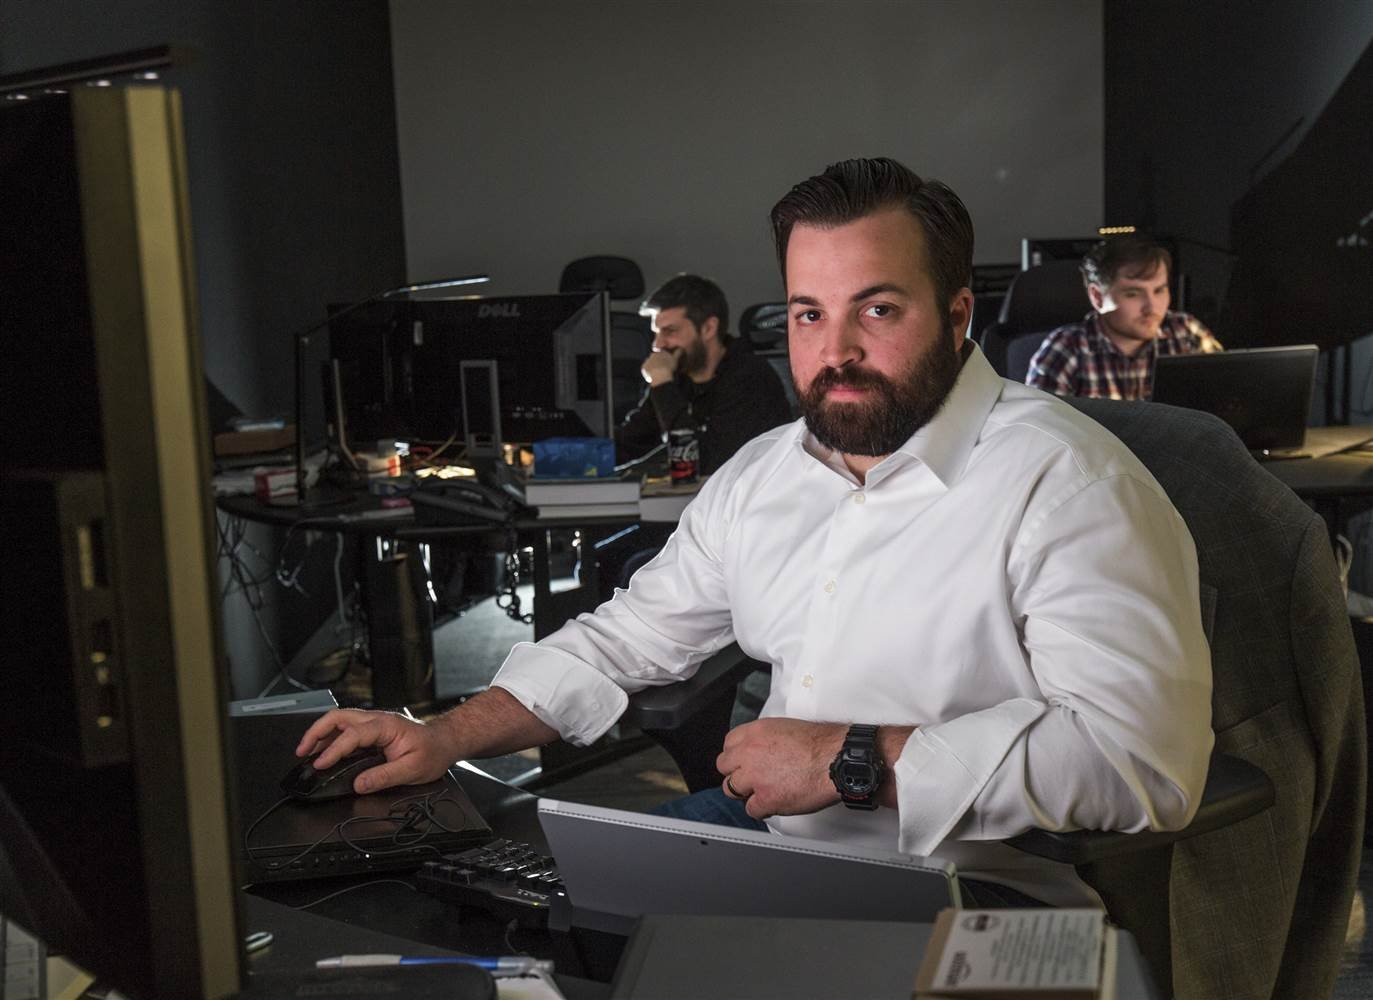 John Hultquist, Senior Manager for Cyber Espionage Threat Intel at iSight, works in the firm's Black Room, where vulnerability analysis is performed. (Brooks Kraft / Corbis via Getty Images)